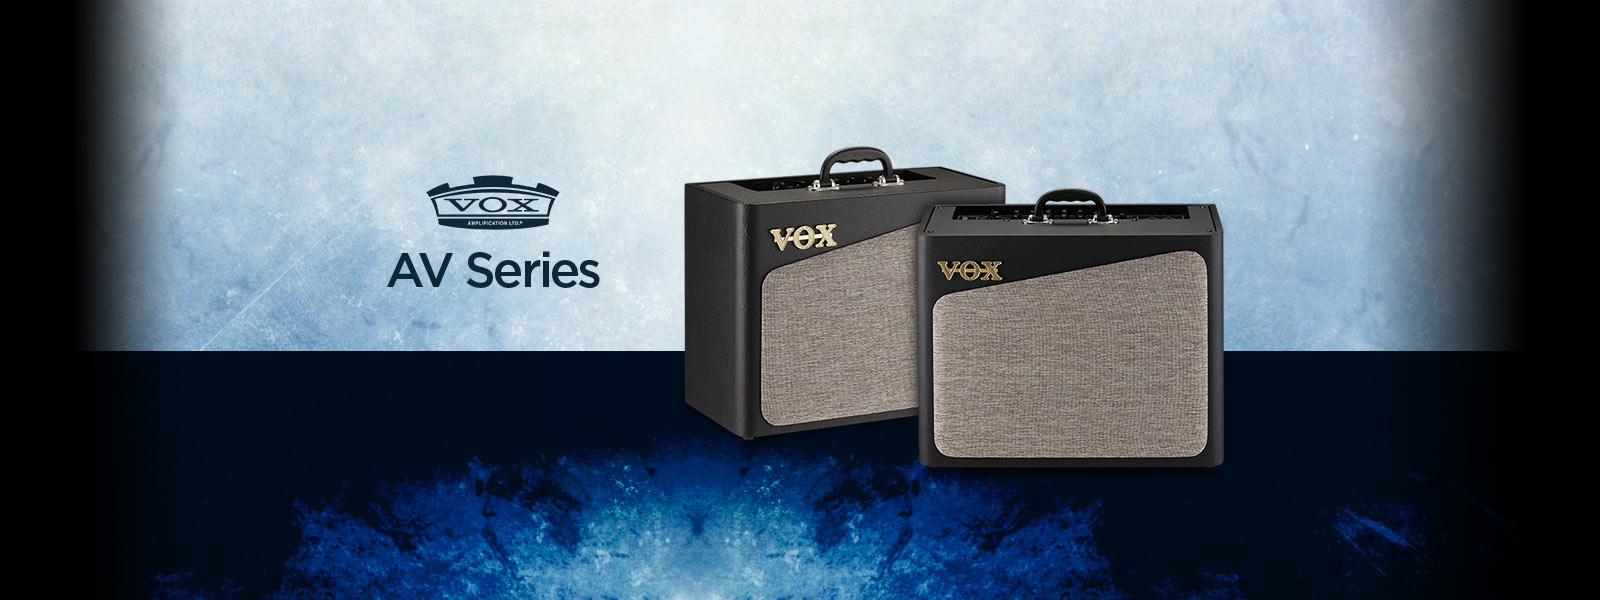 VOX A Vee Series Amplifiers